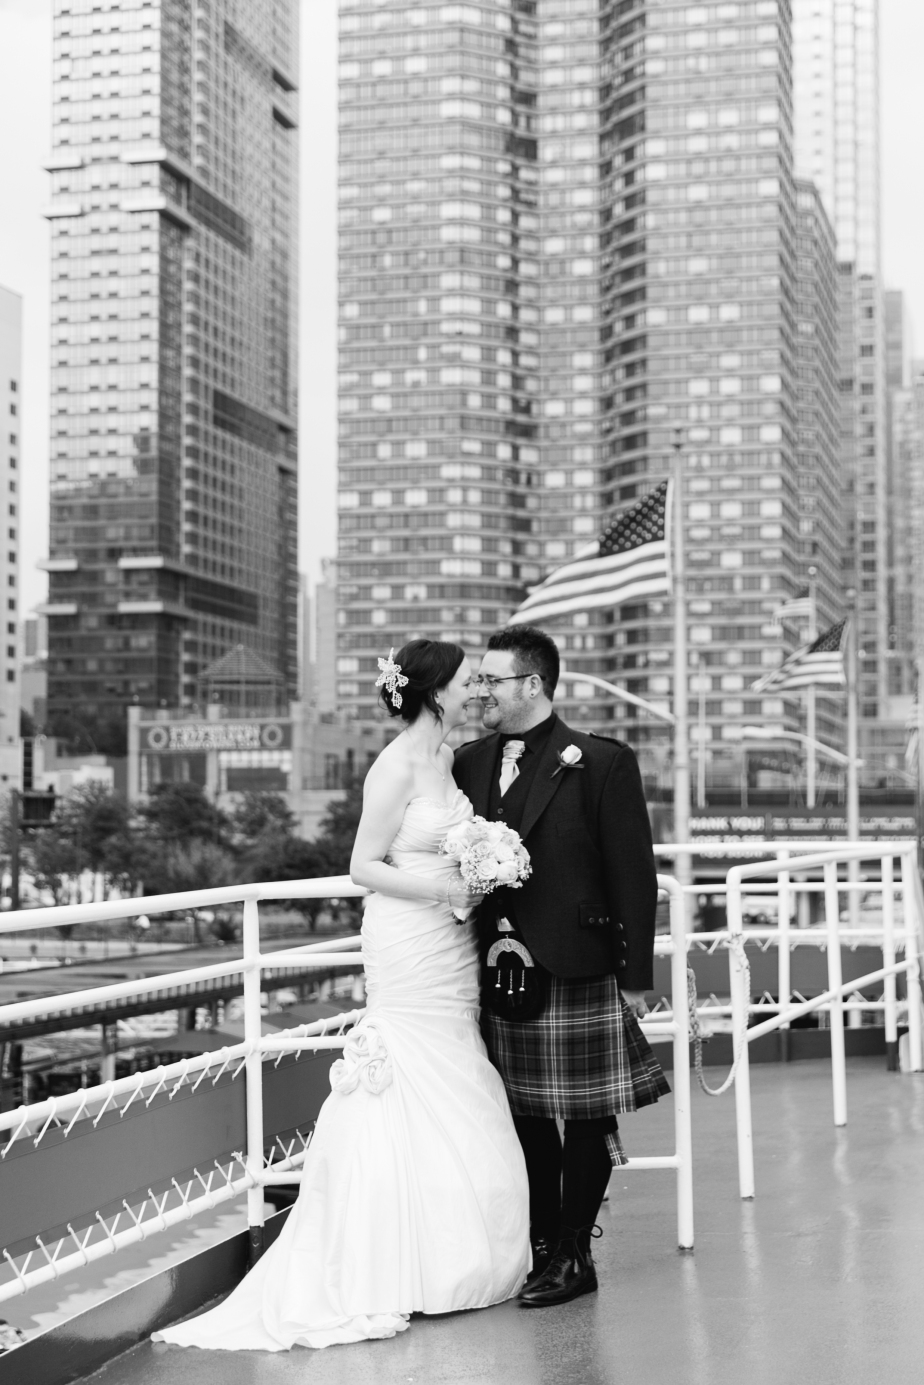 VA_nyc_wedding-245